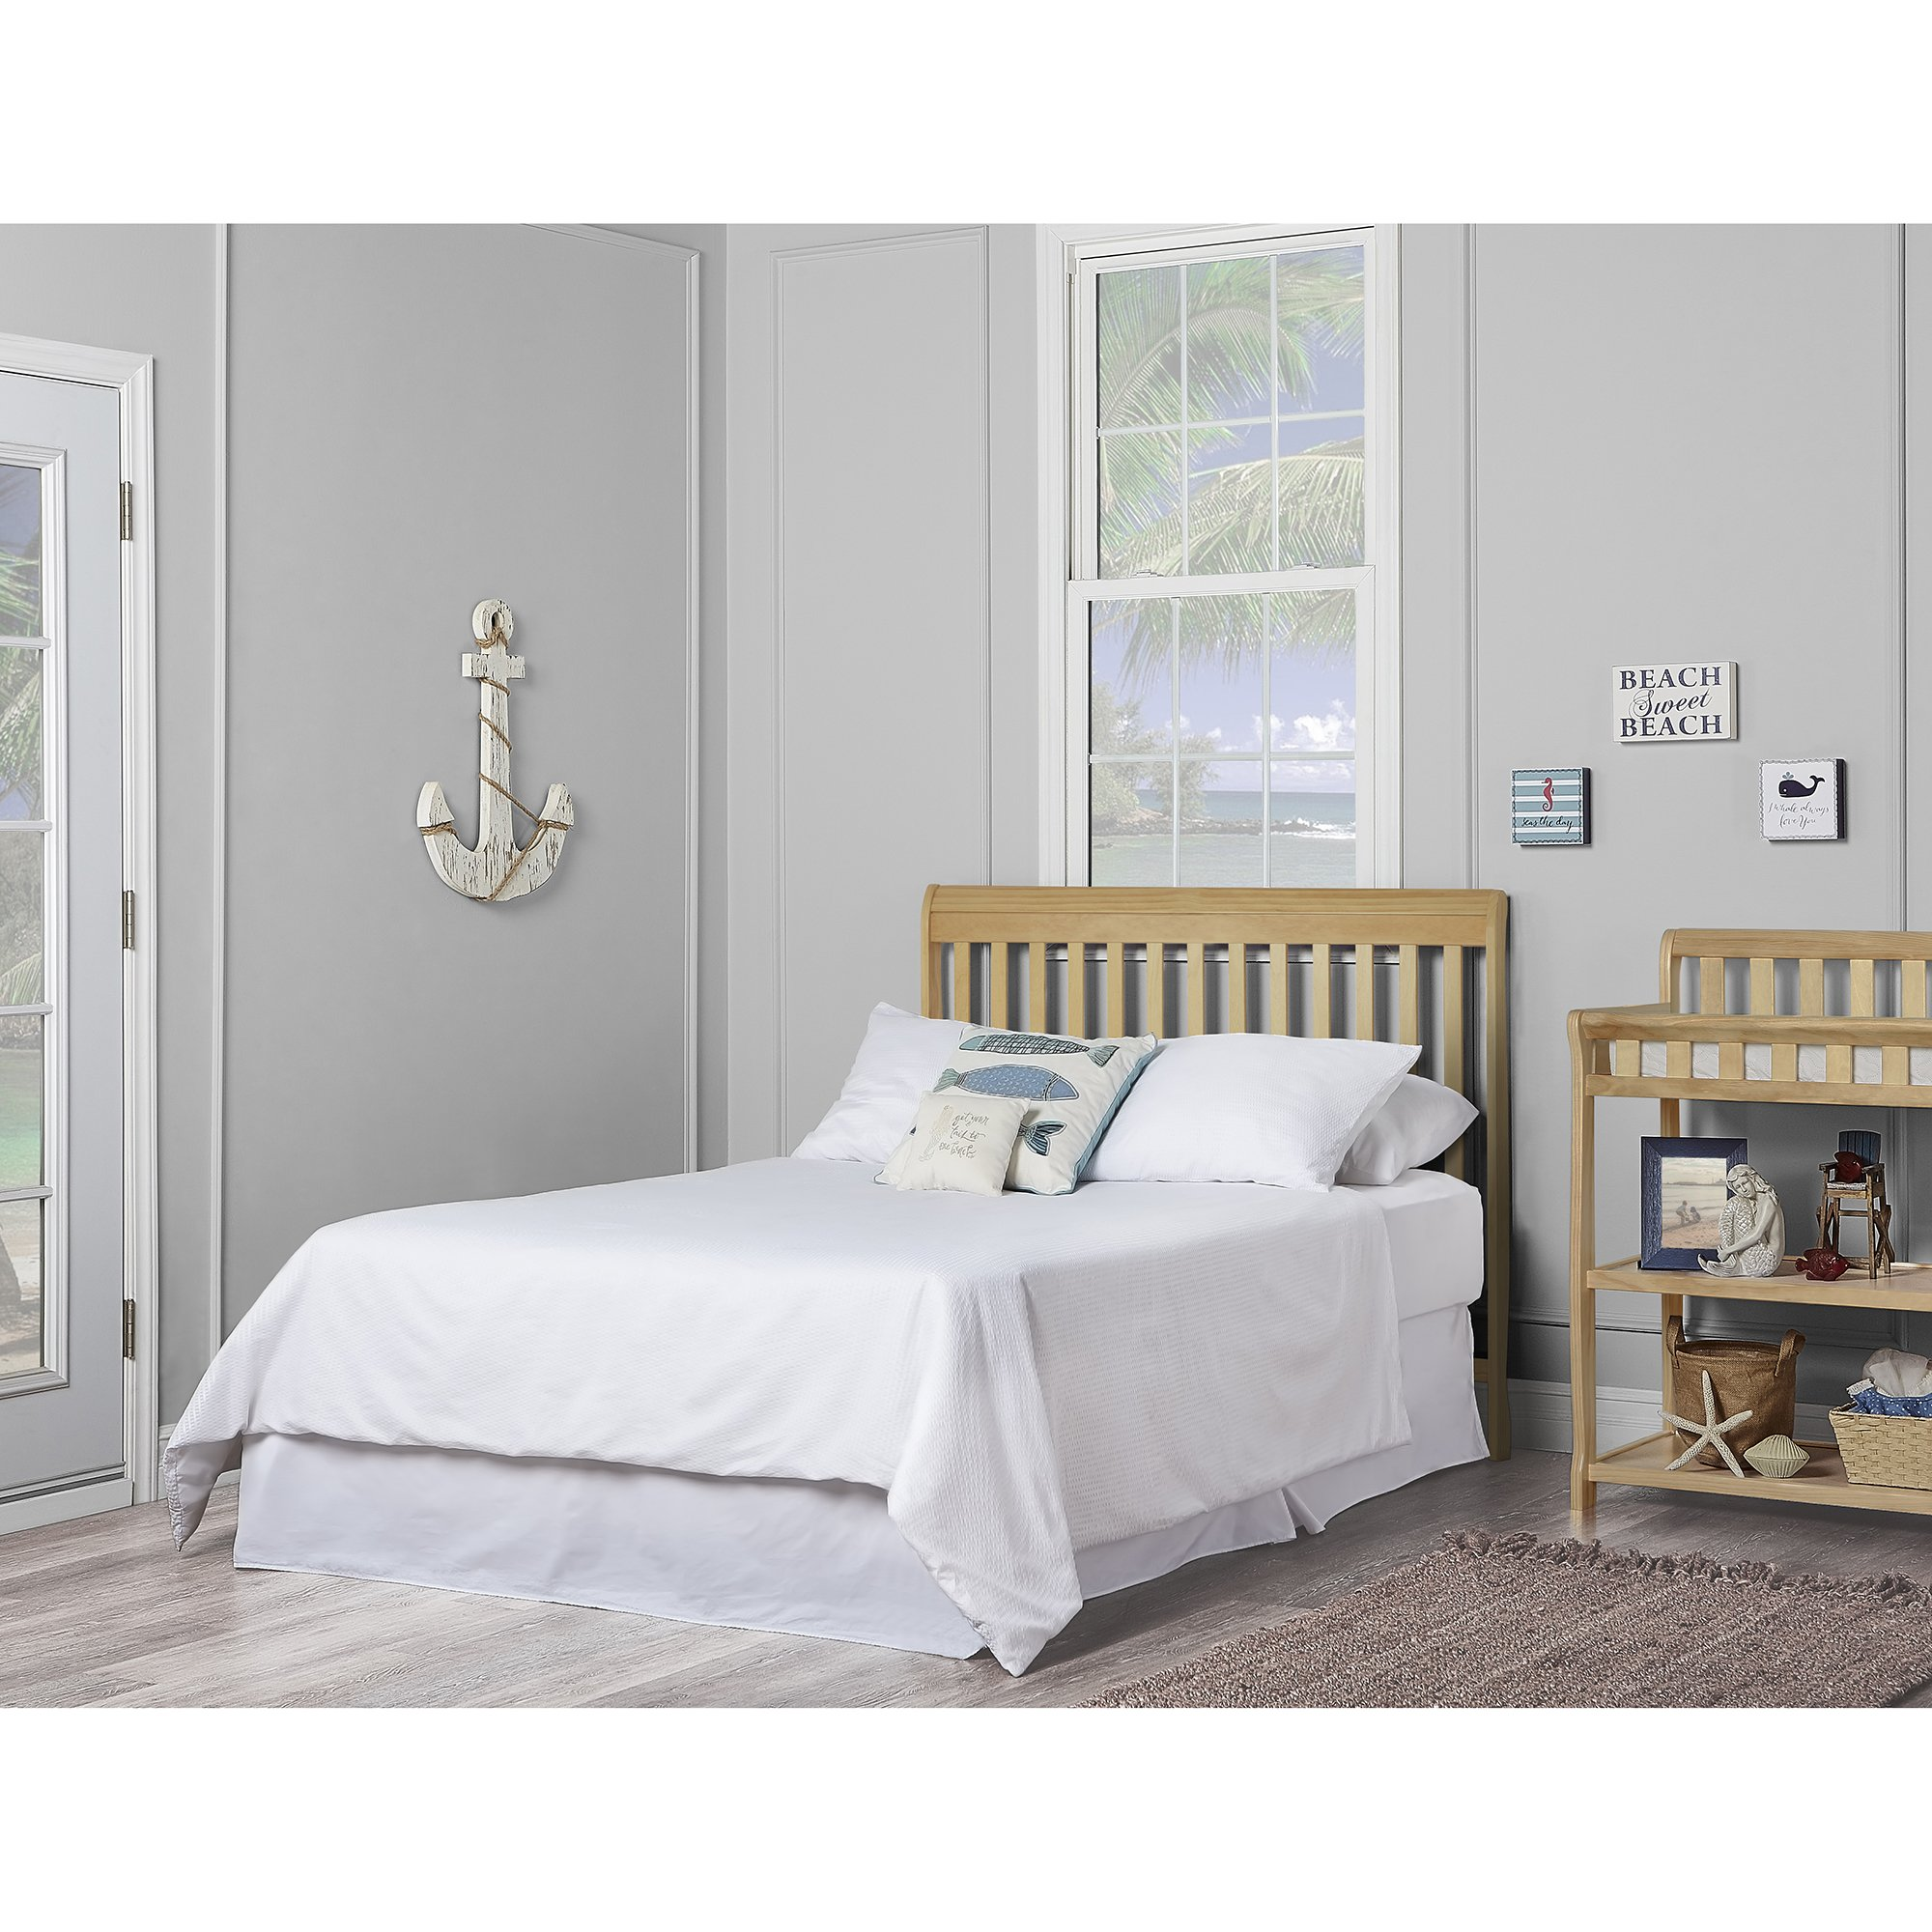 Dream On Me Ashton 5 in 1 Convertible Crib, Natural by Dream On Me (Image #7)